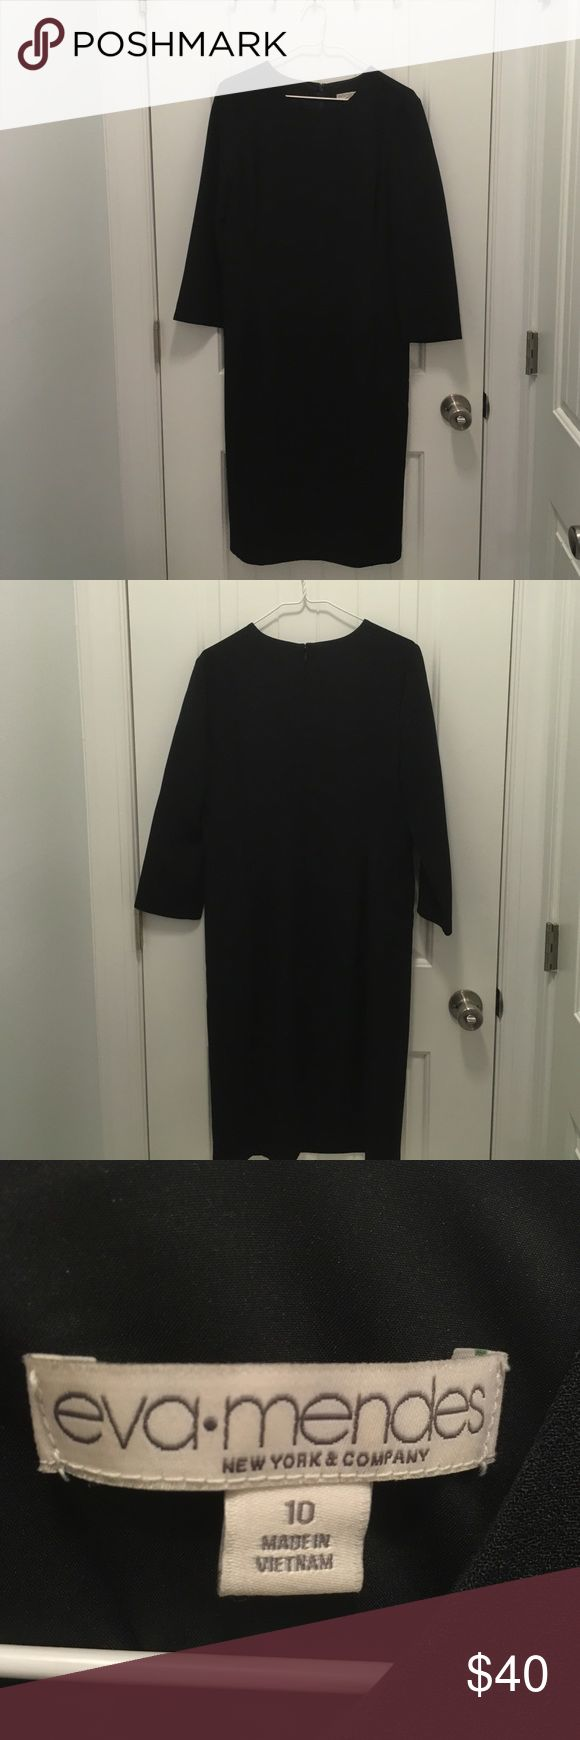 Eva Mendes Jessica Black Dress New York & Company Black Jessica dress. Eva Mendes collection. Size 10. Three quarter length sleeves, slit in the back. Worn once and cleaned. 100% polyester. Comes from a non-smoking home, but pet friendly. New York & Company Dresses